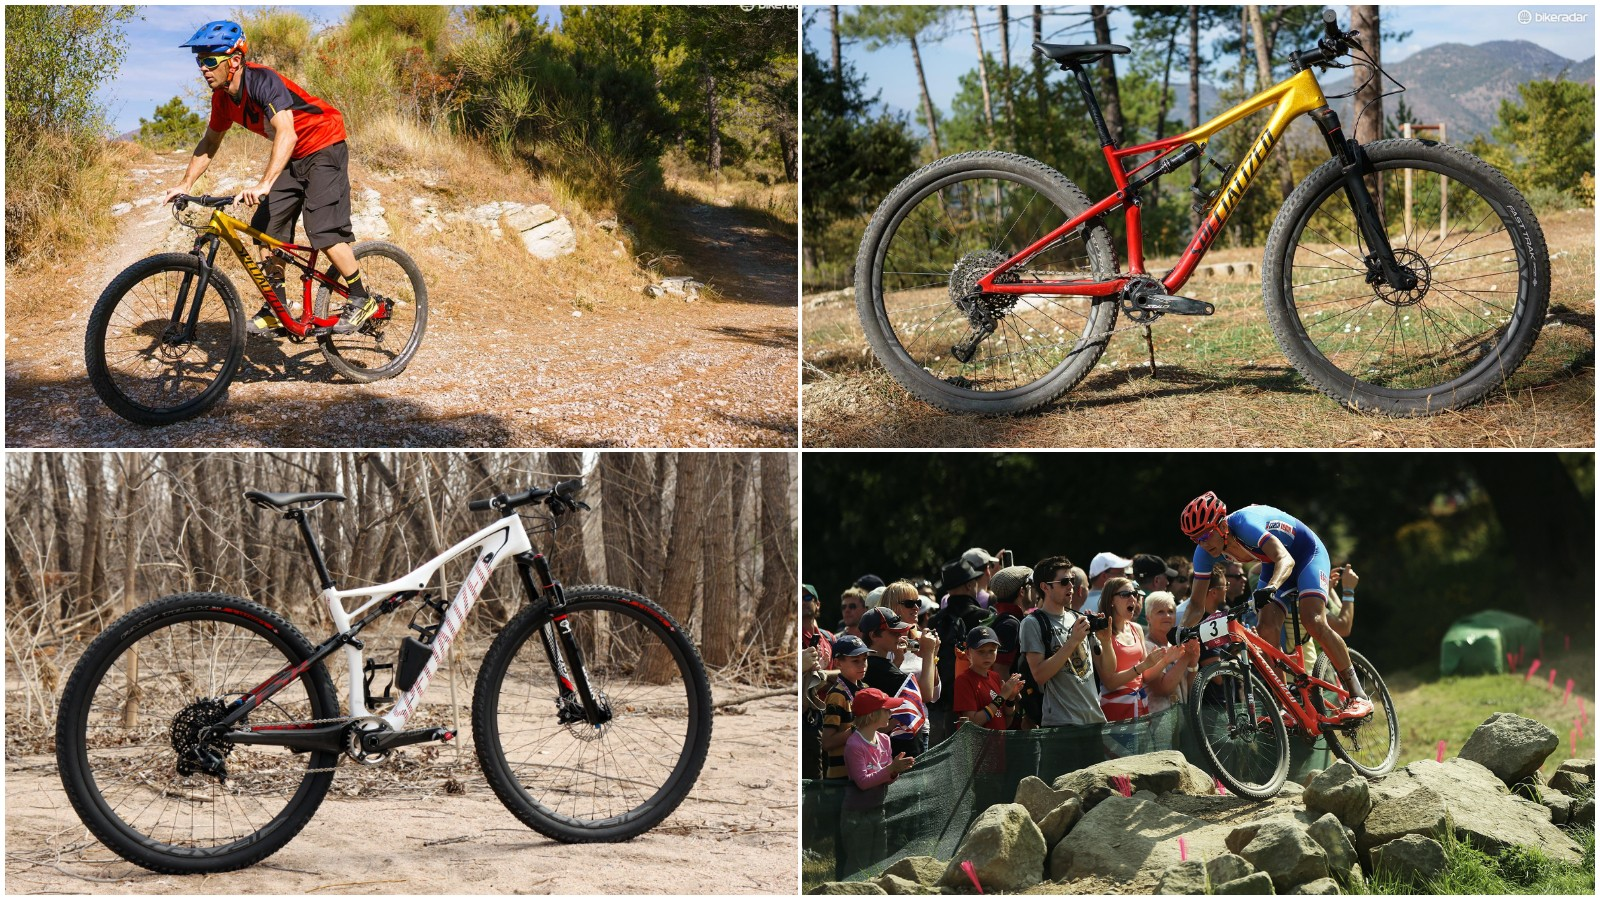 The evolution of the cross-country bike has been a strong example of the industry and UCI getting things right